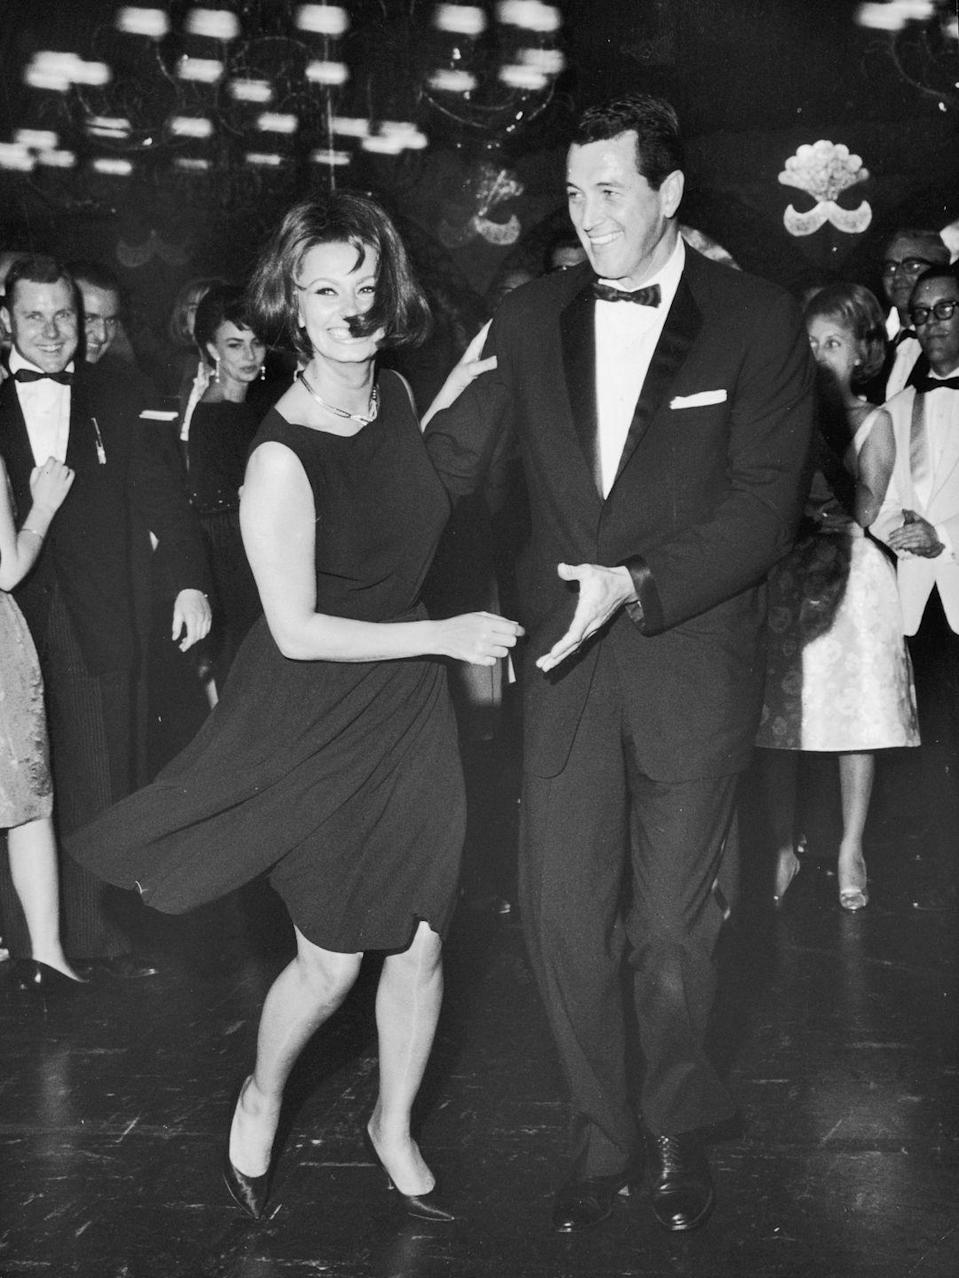 <p>At an event, Hudson danced with famed actress Sophia Loren on a crowded dance floor. </p>